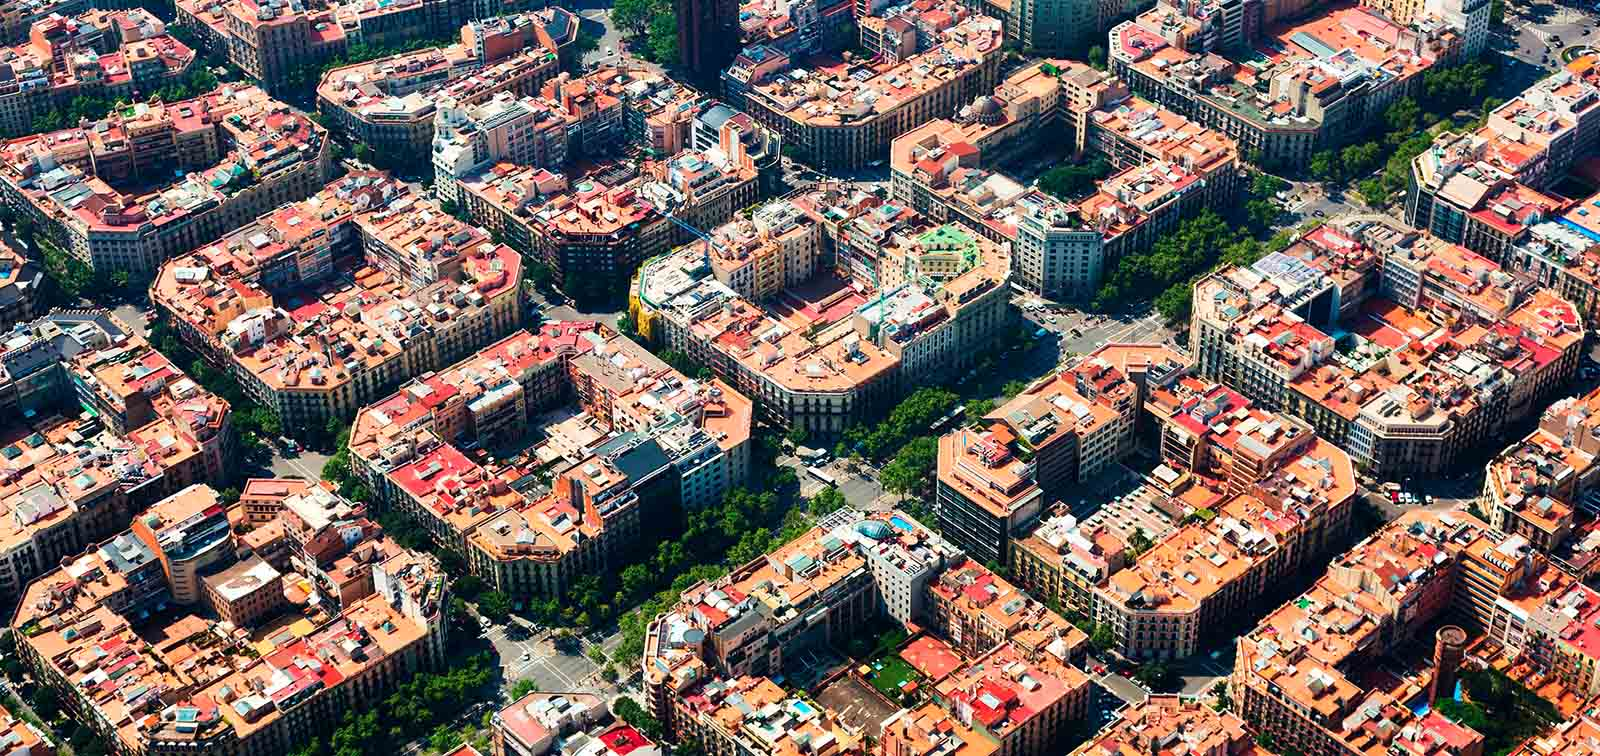 Urban Planning, Environment and Health Initiative - ISGLOBAL